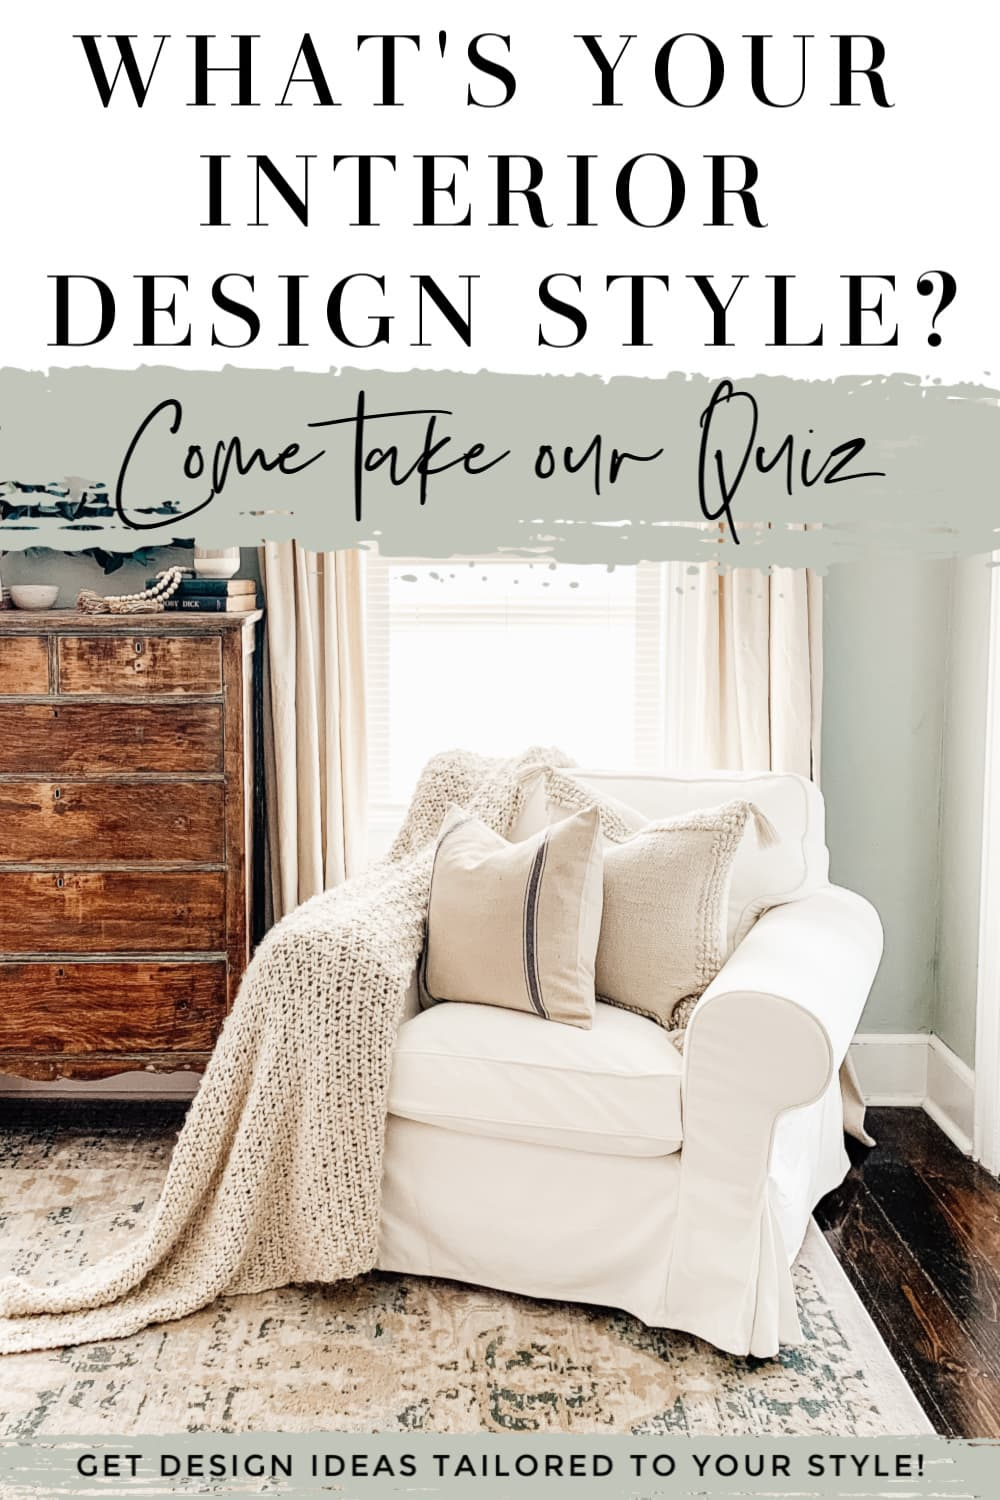 Interior Design Style Quiz - Micheala Diane Designs